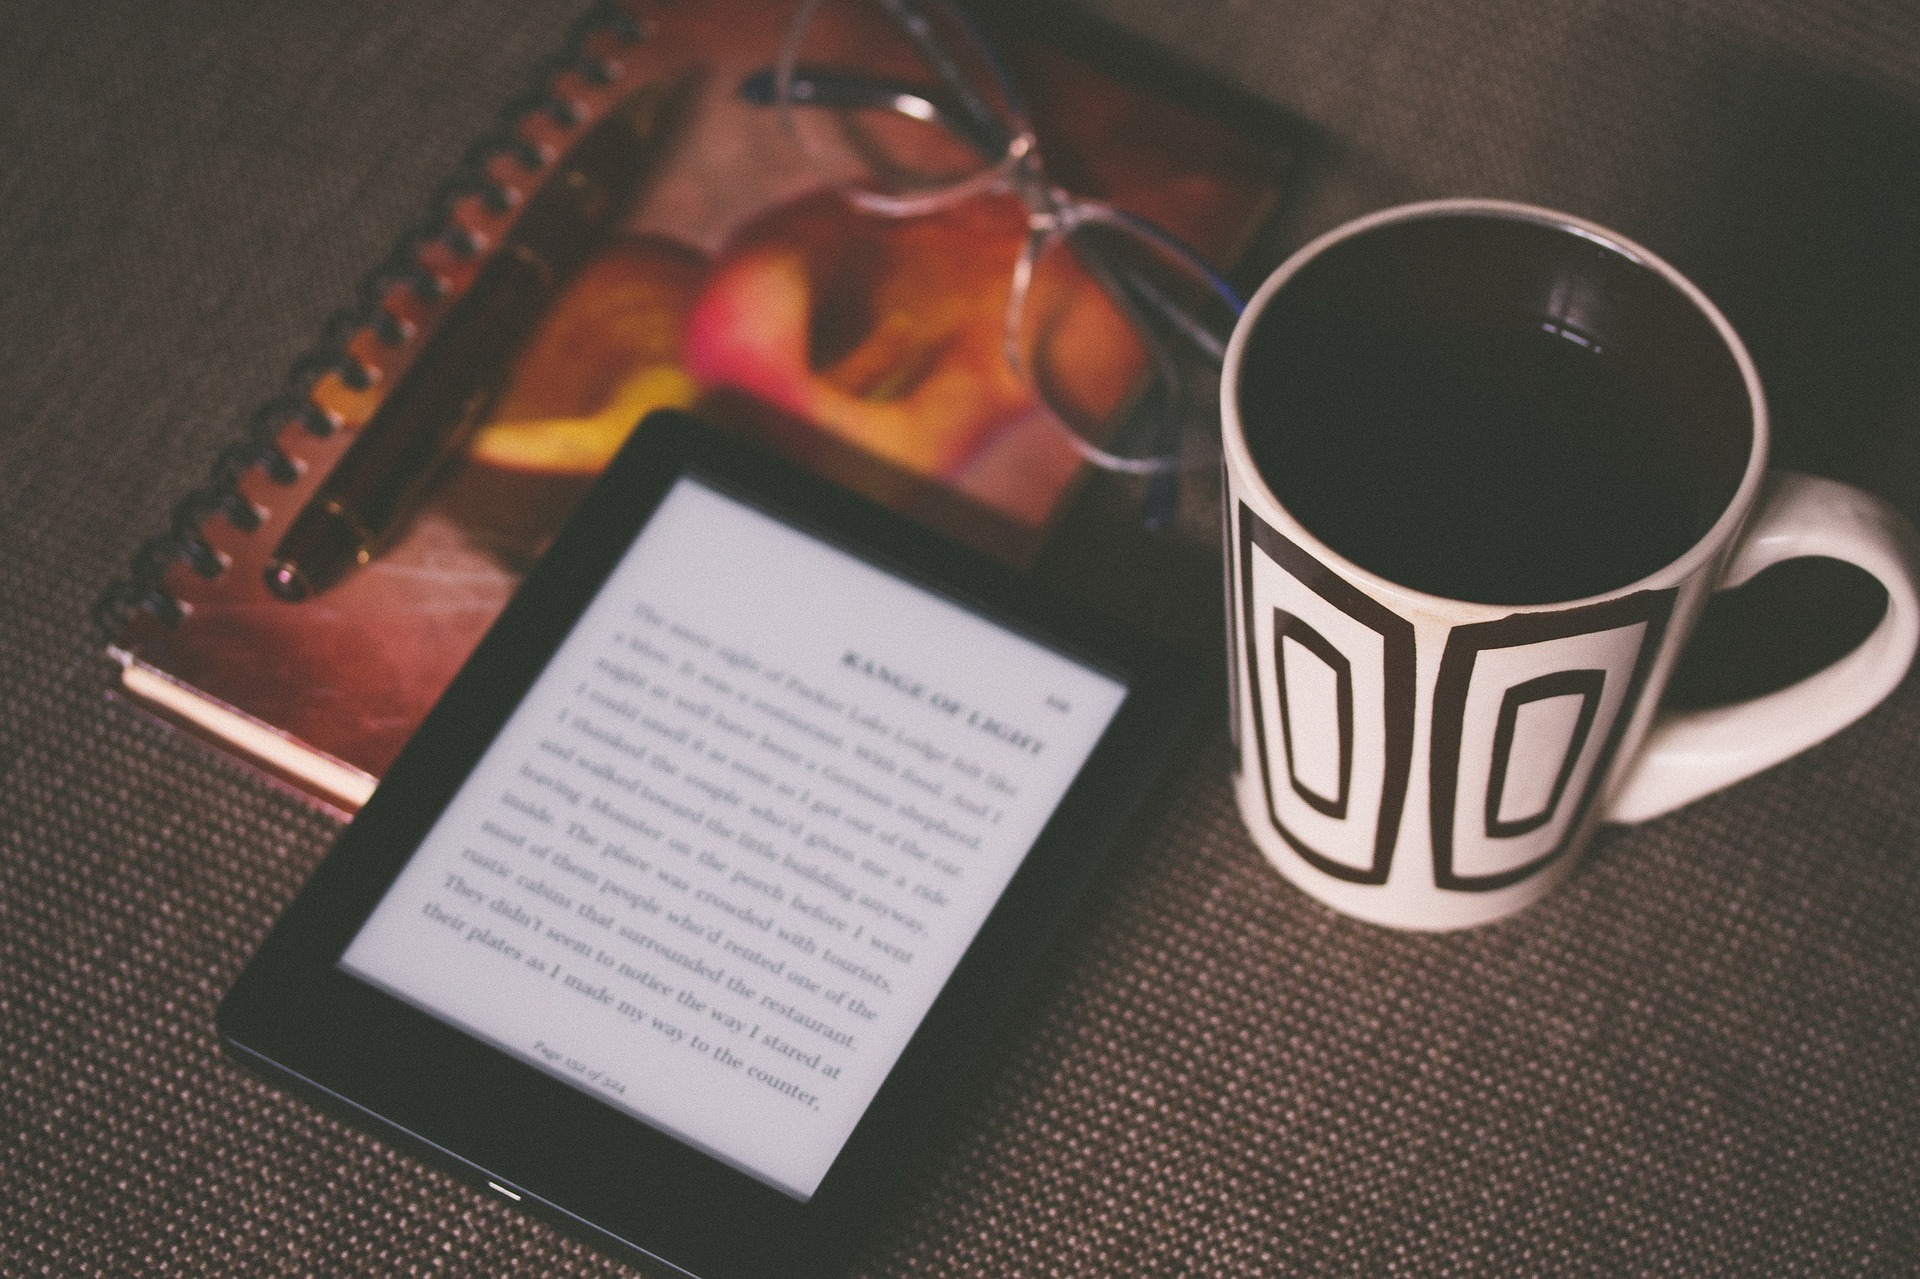 Unlock Your Kindle and Use Kindle Unlimited Abroad